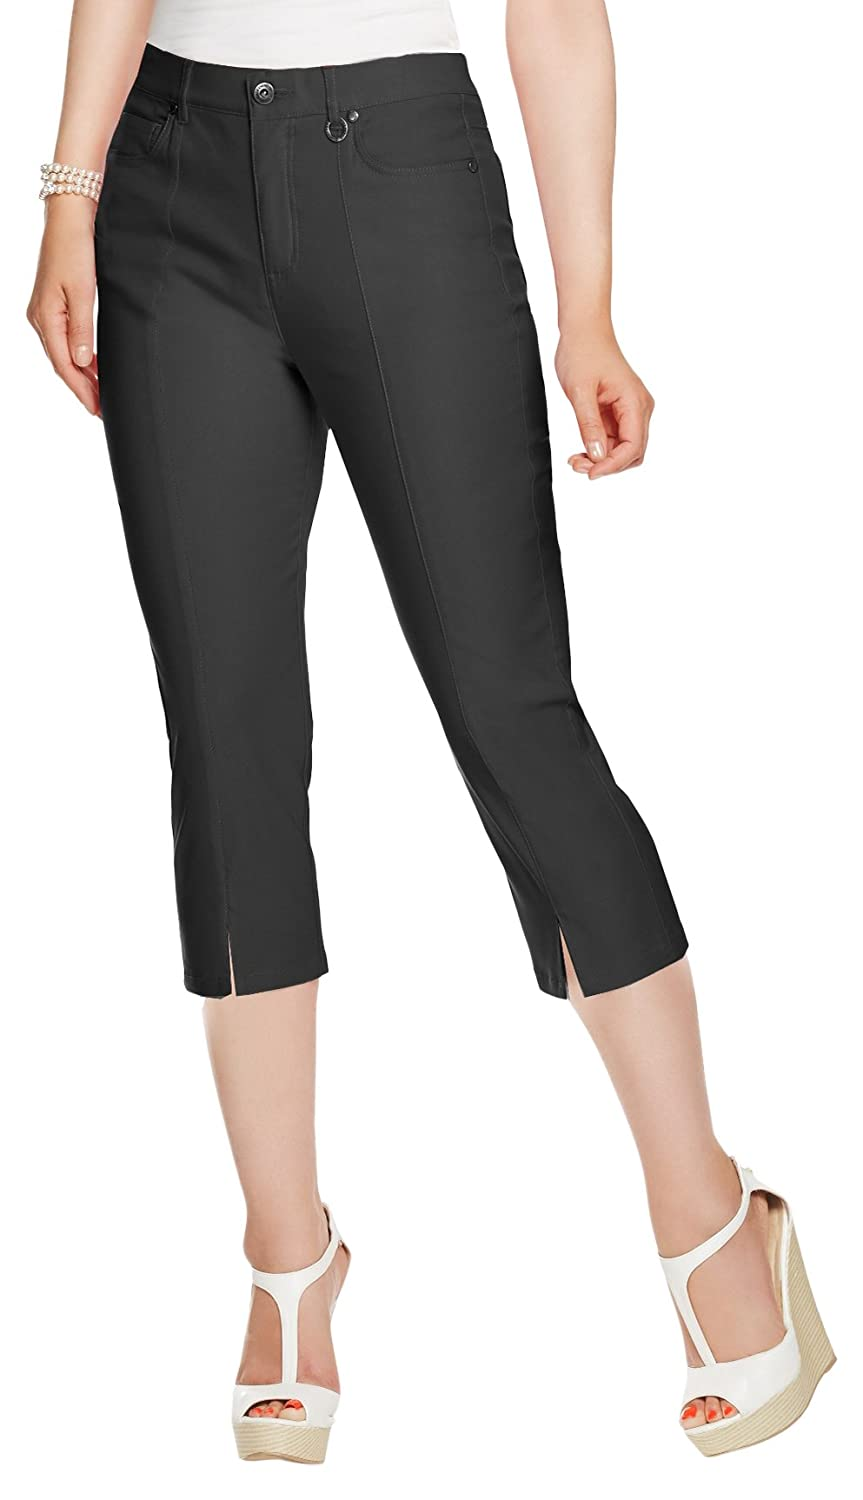 76b23af8029 Simon Chang Canada Womens Micro Twill Capri at Amazon Women s Clothing  store